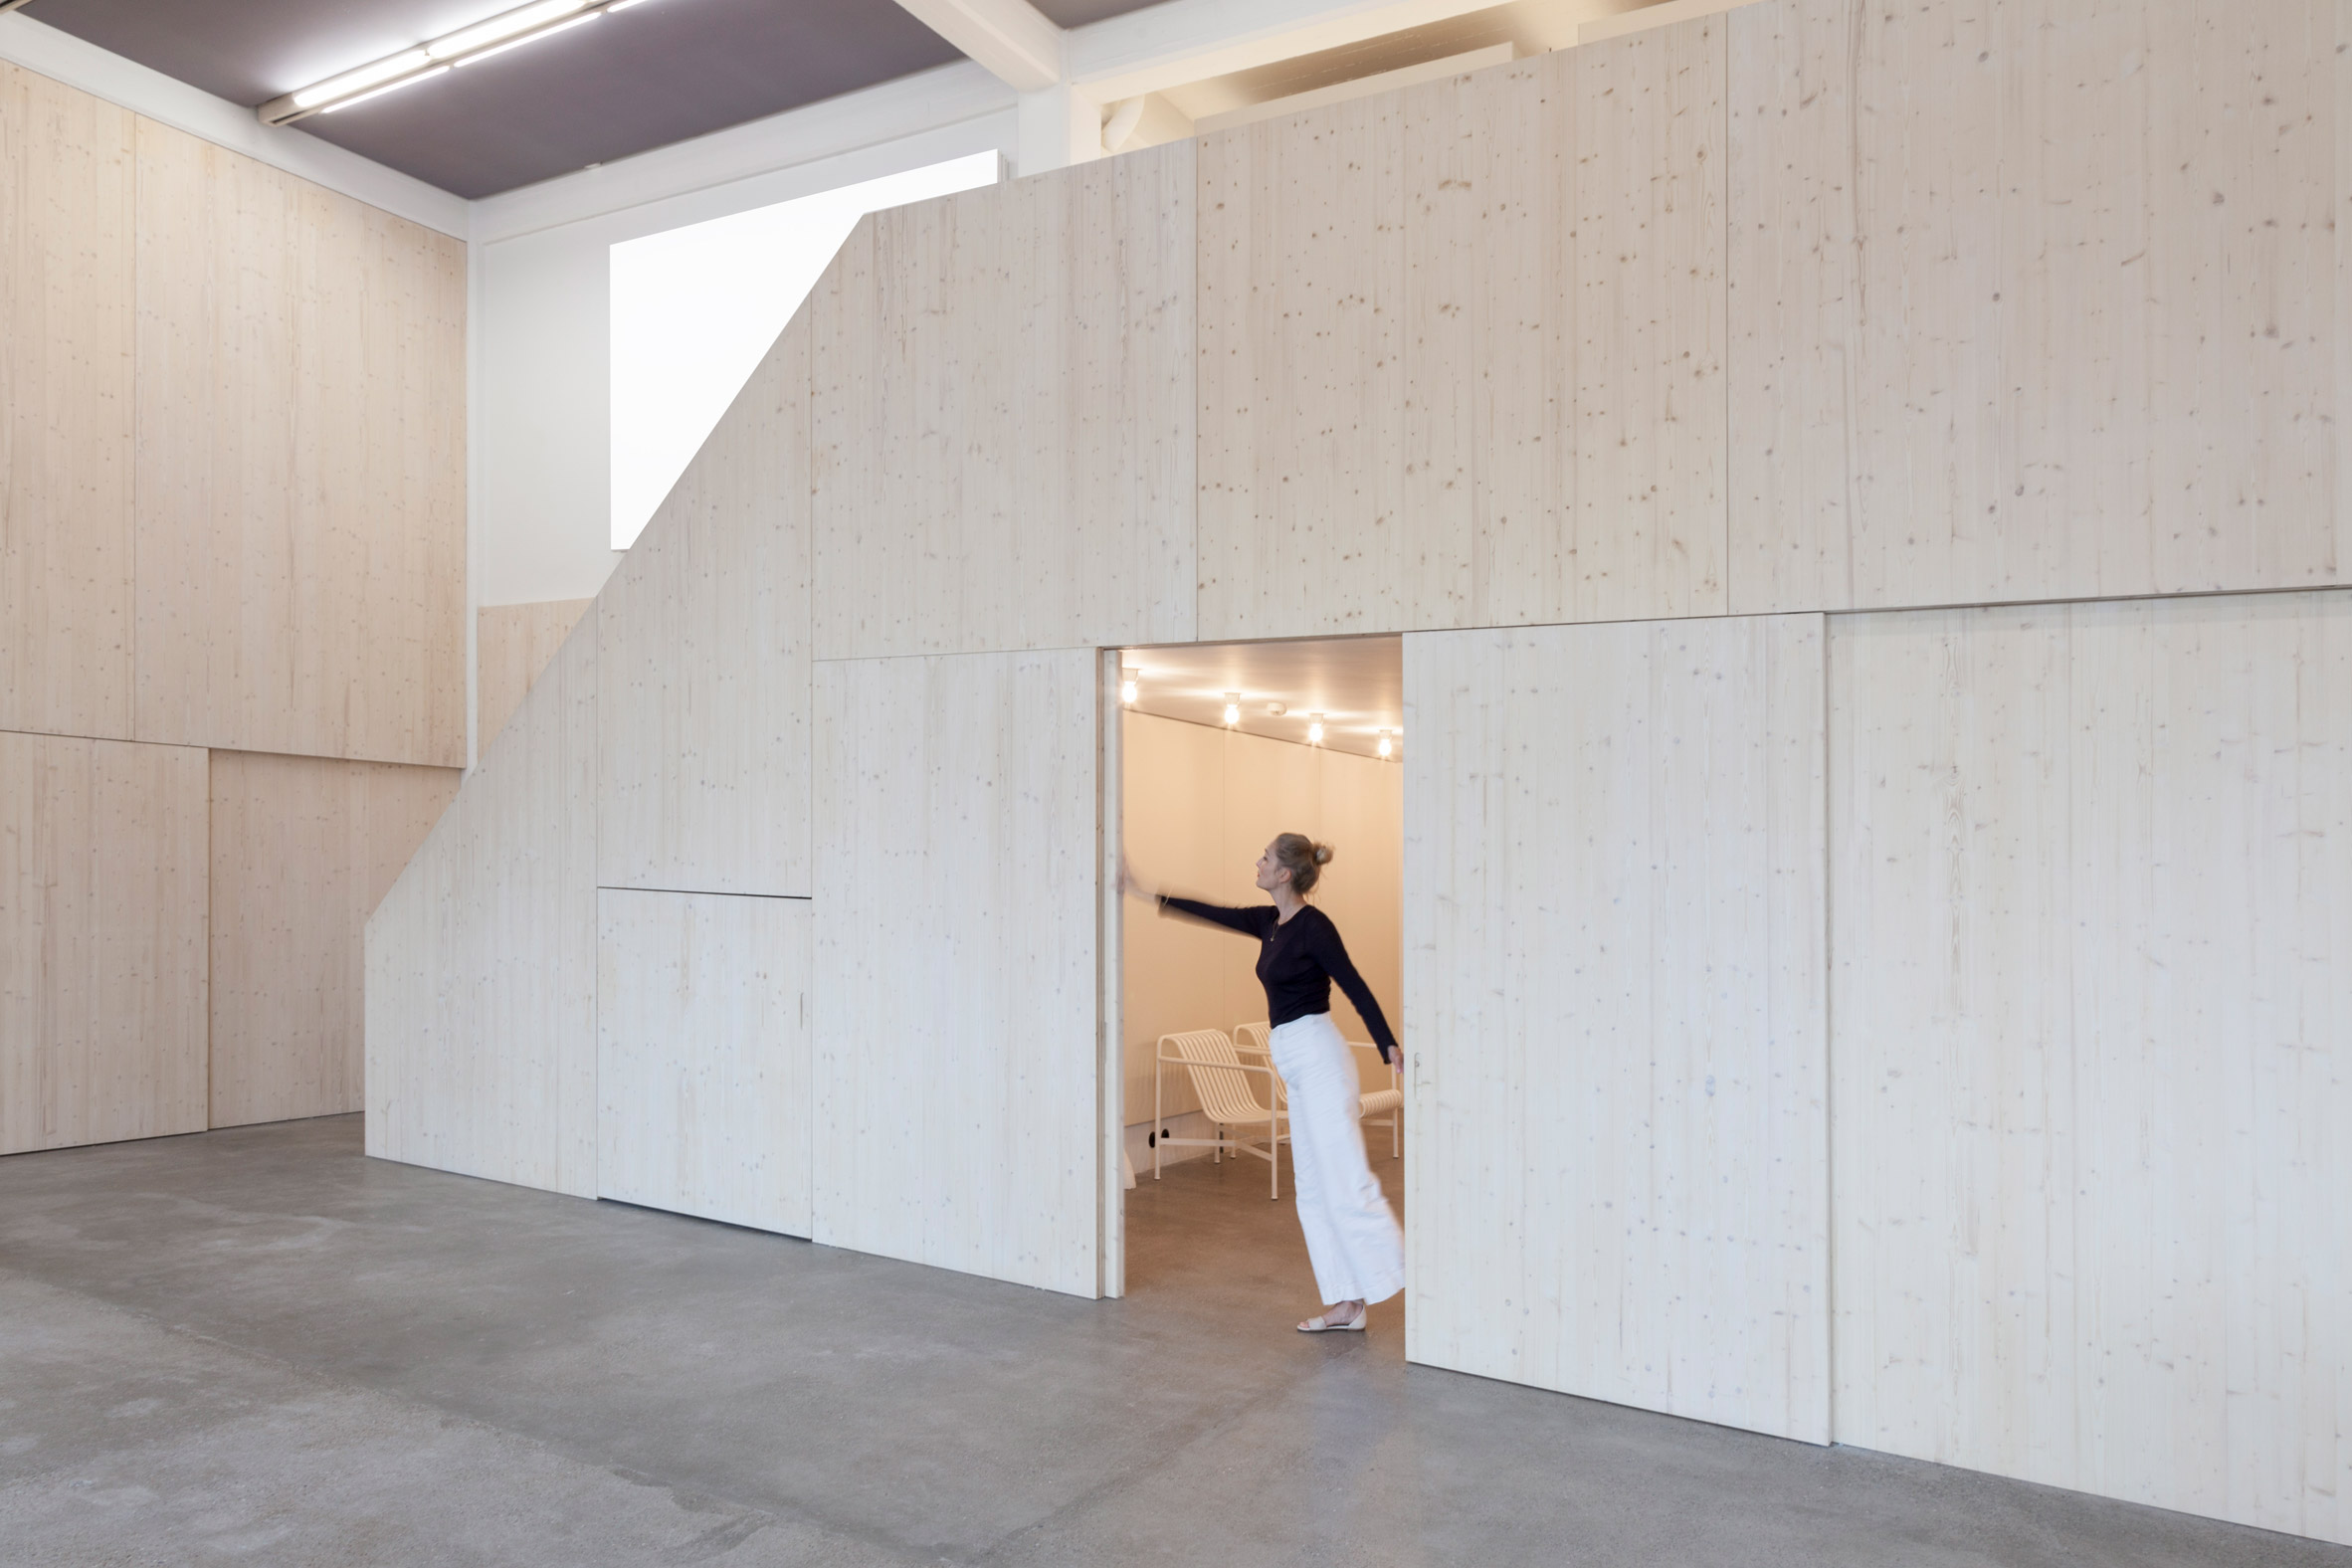 Caruso St John uses spruce lumber boards to create design studio for Kvadrat Soft Cells